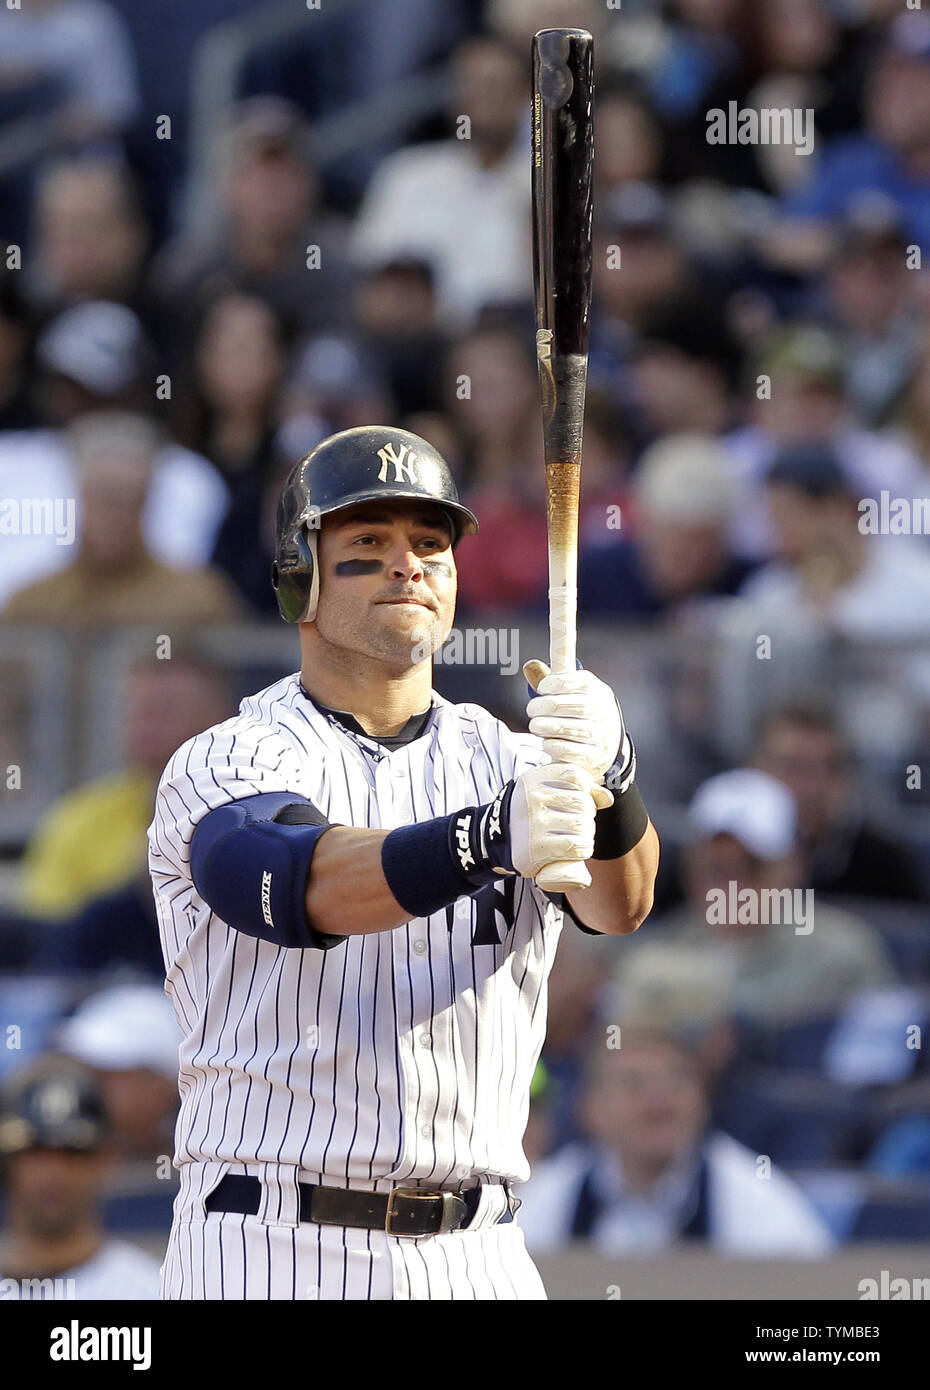 buy online d664b 5e2b6 New York Yankees Nick Swisher stands at the plate in the ...